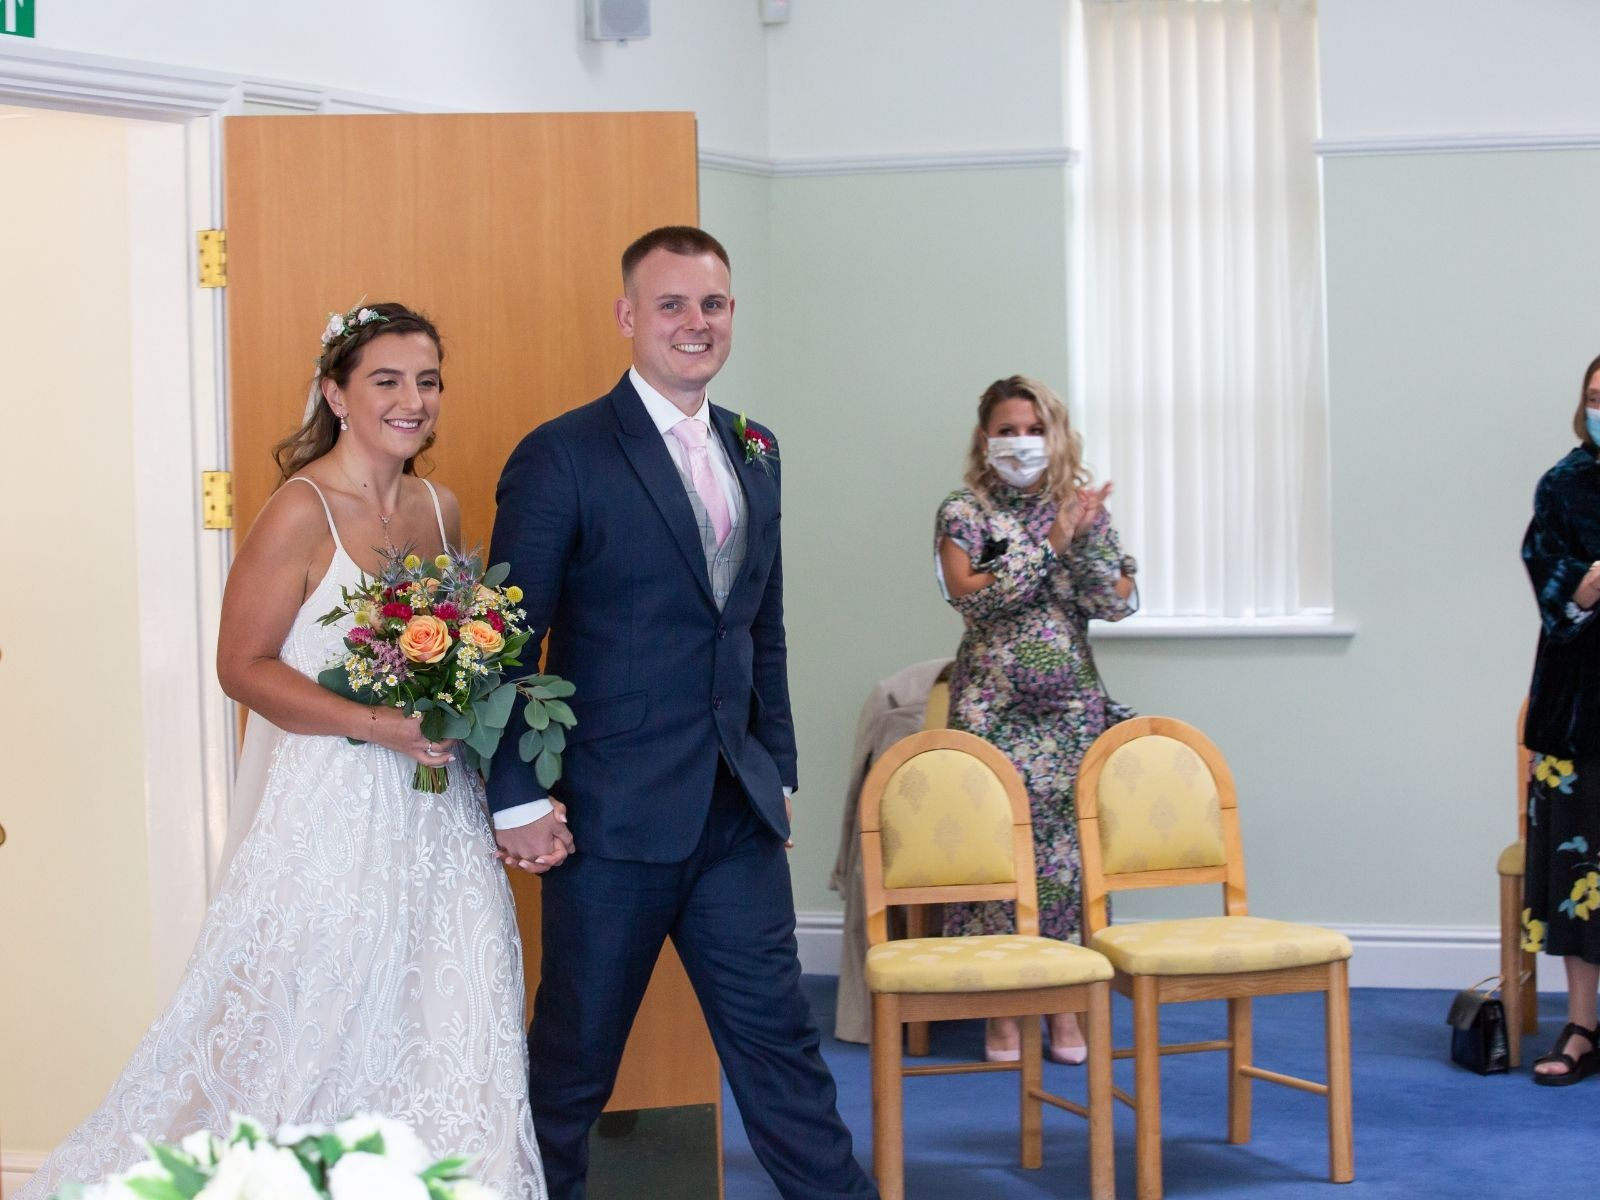 Lockdown wedding ceremony